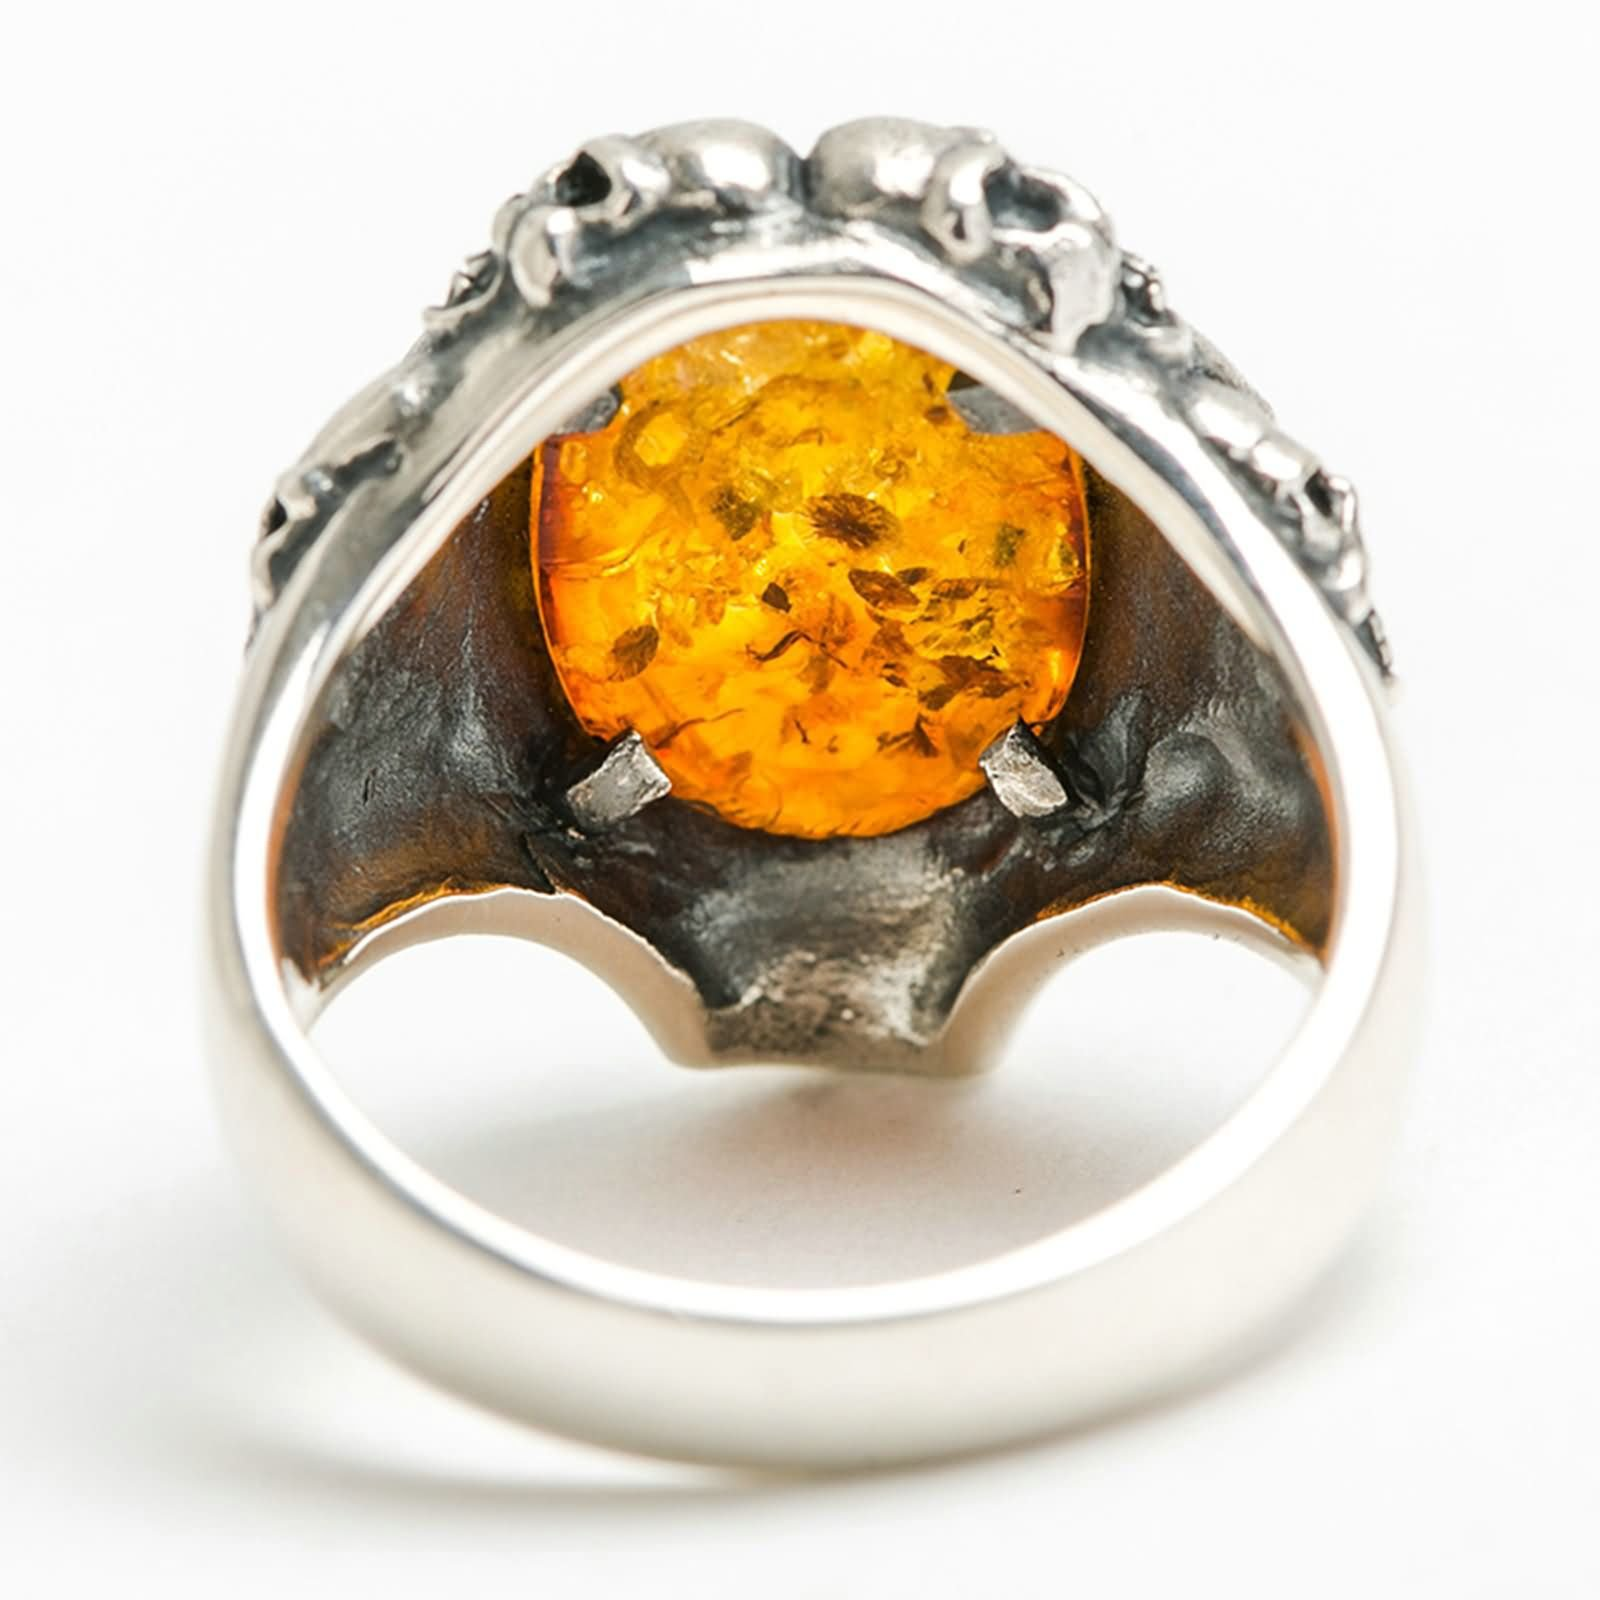 Bishilin Rings for Men Silver Plated Skull Oval Amber Friendship Rings Silver Size 12.5 by Bishilin (Image #4)